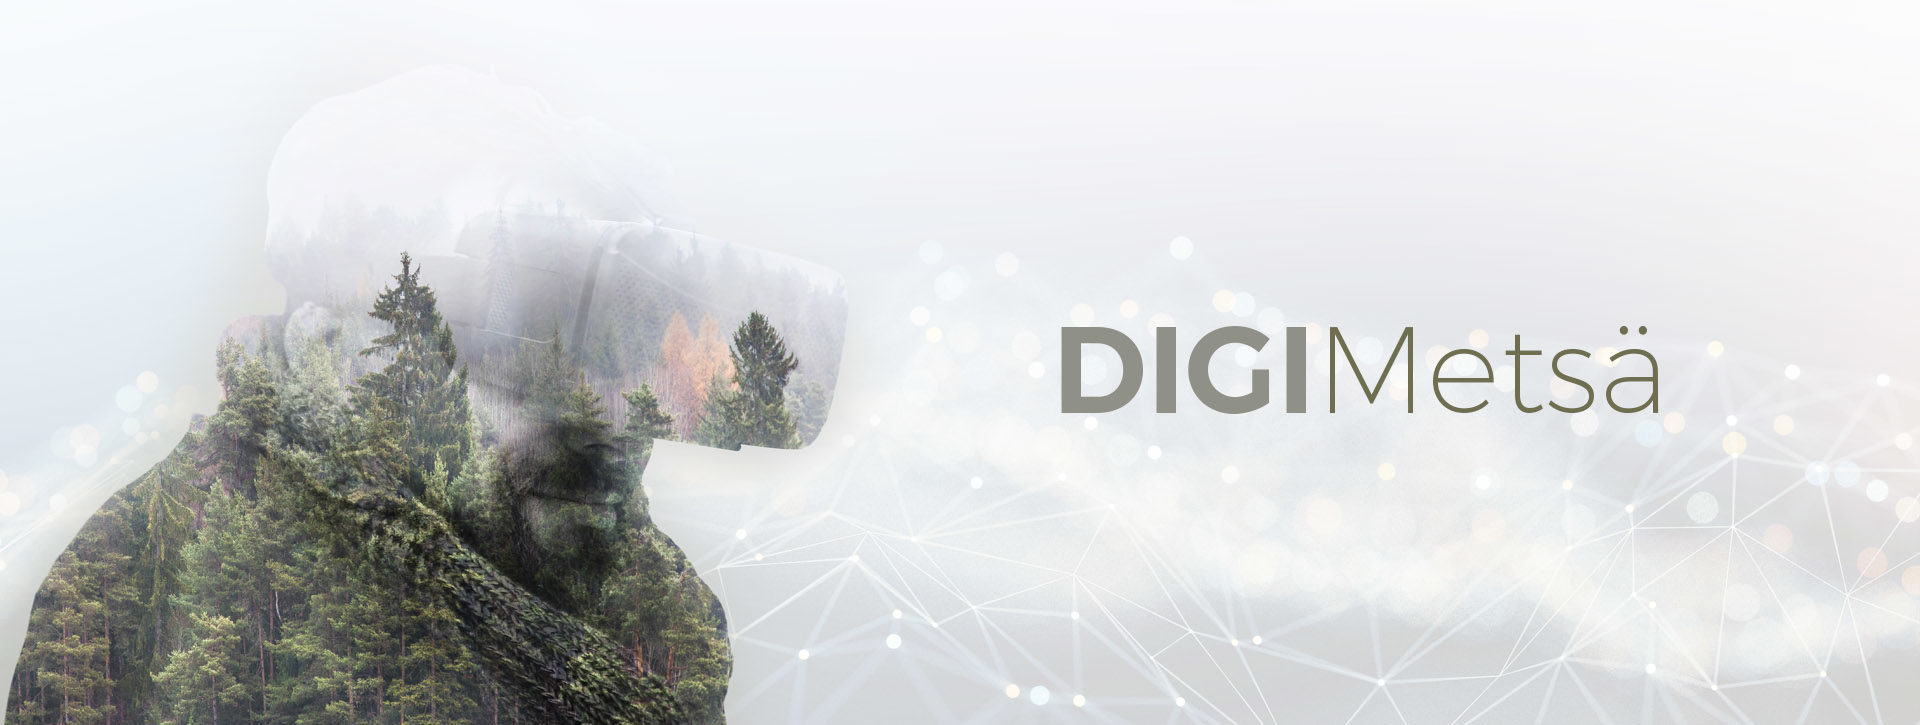 Digimetsä